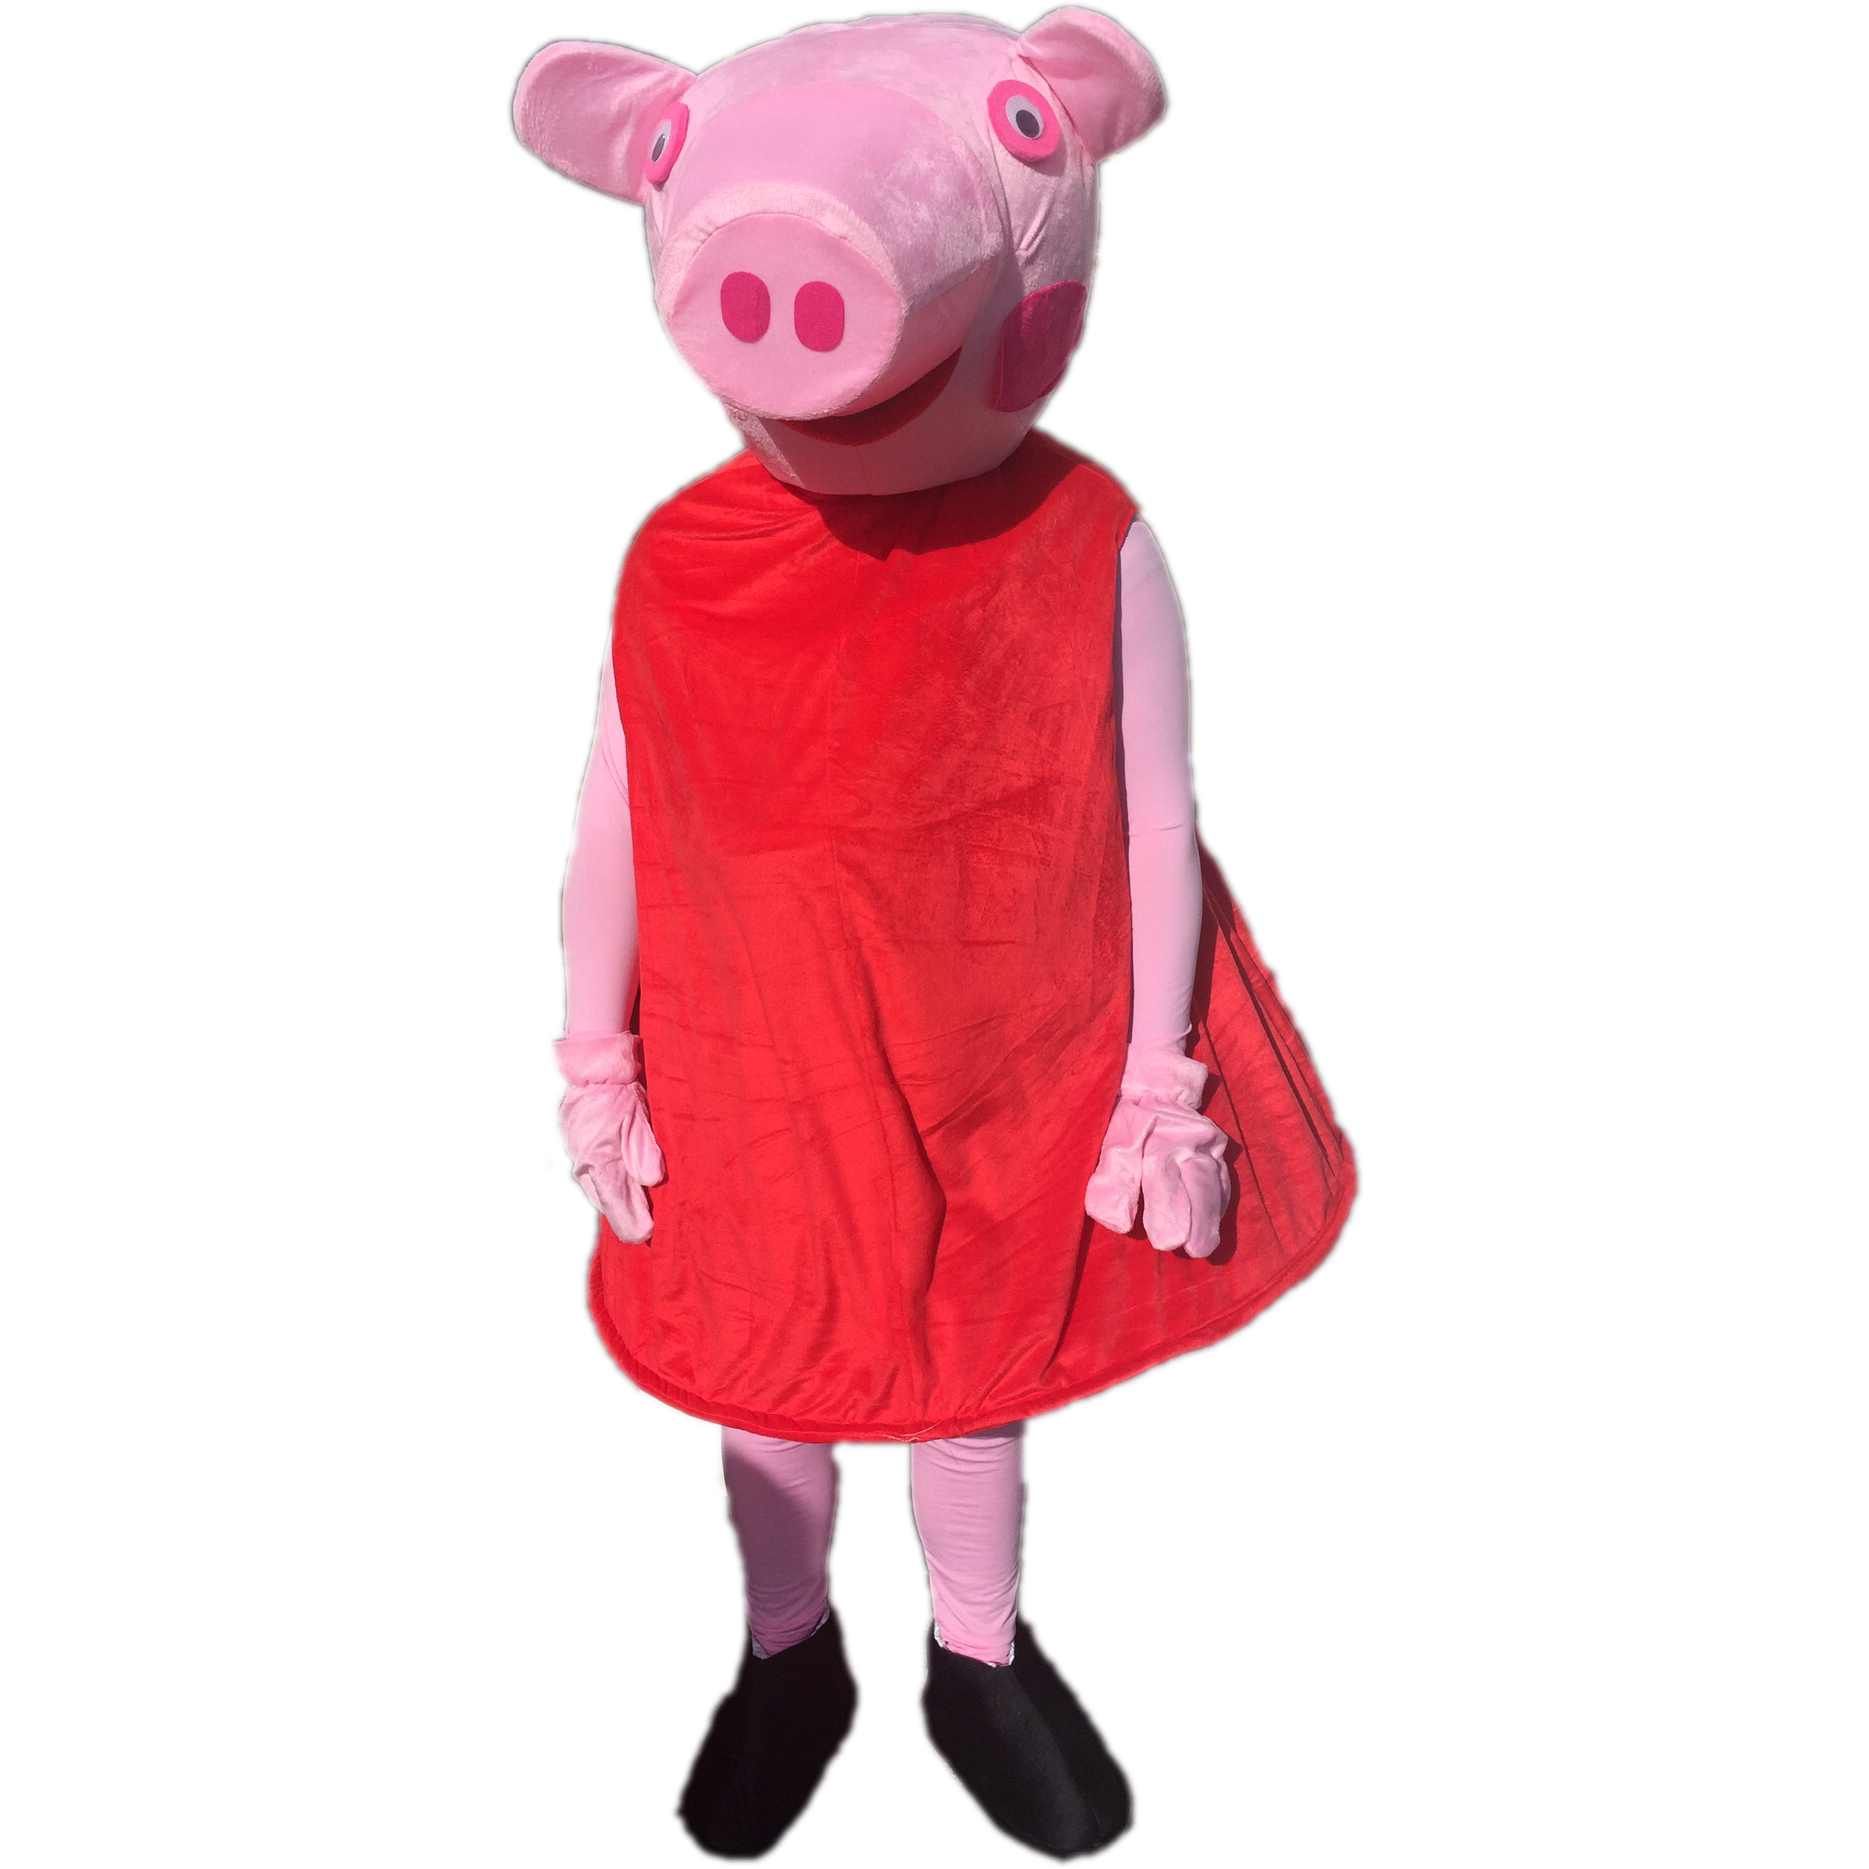 Red Pig Mascot